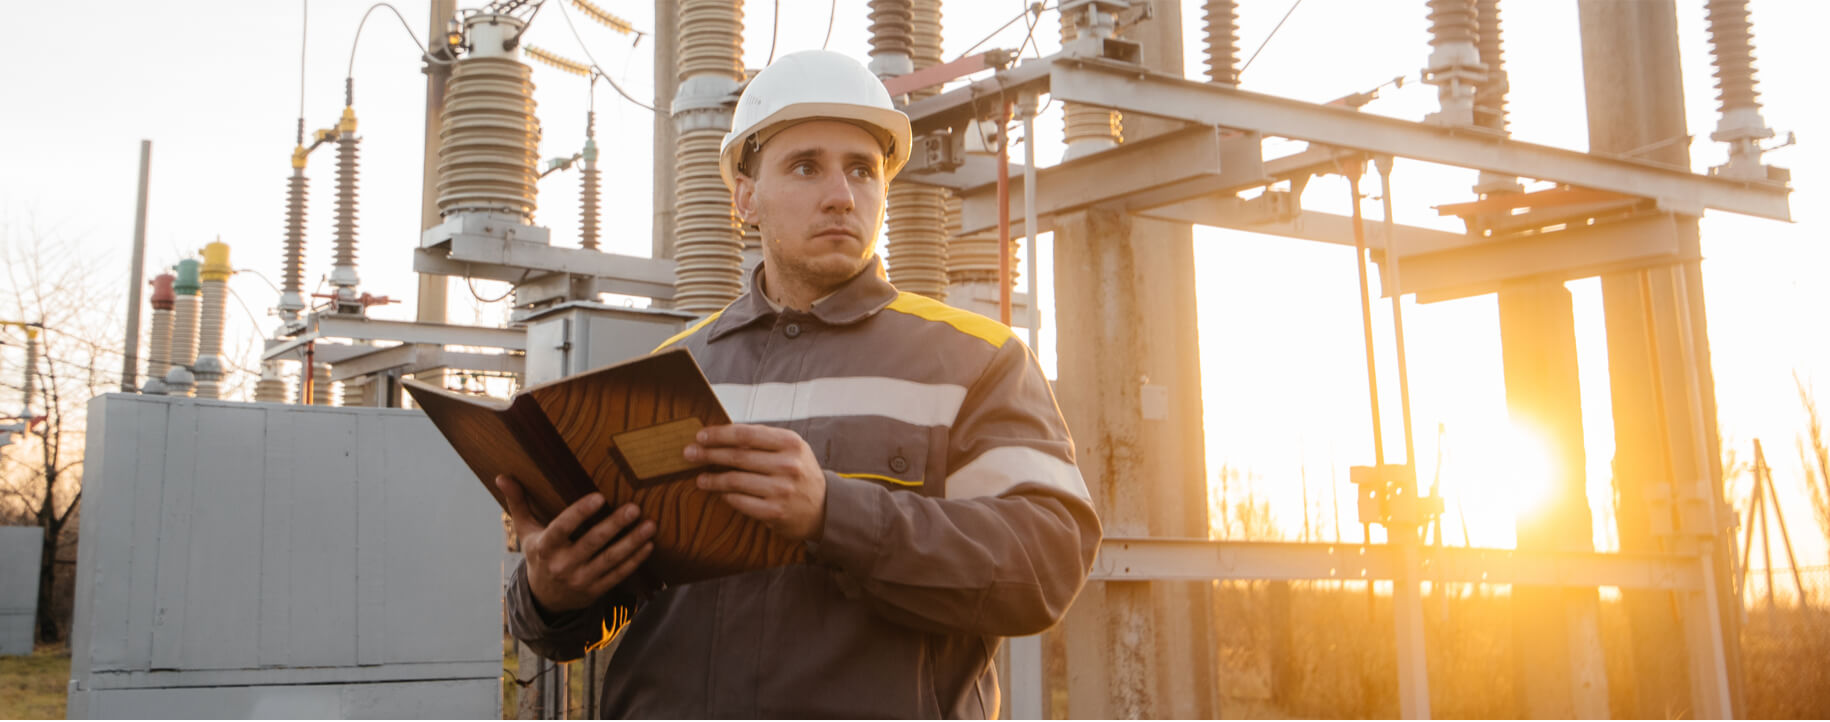 Man-standing-in-front-of-transformer-substation